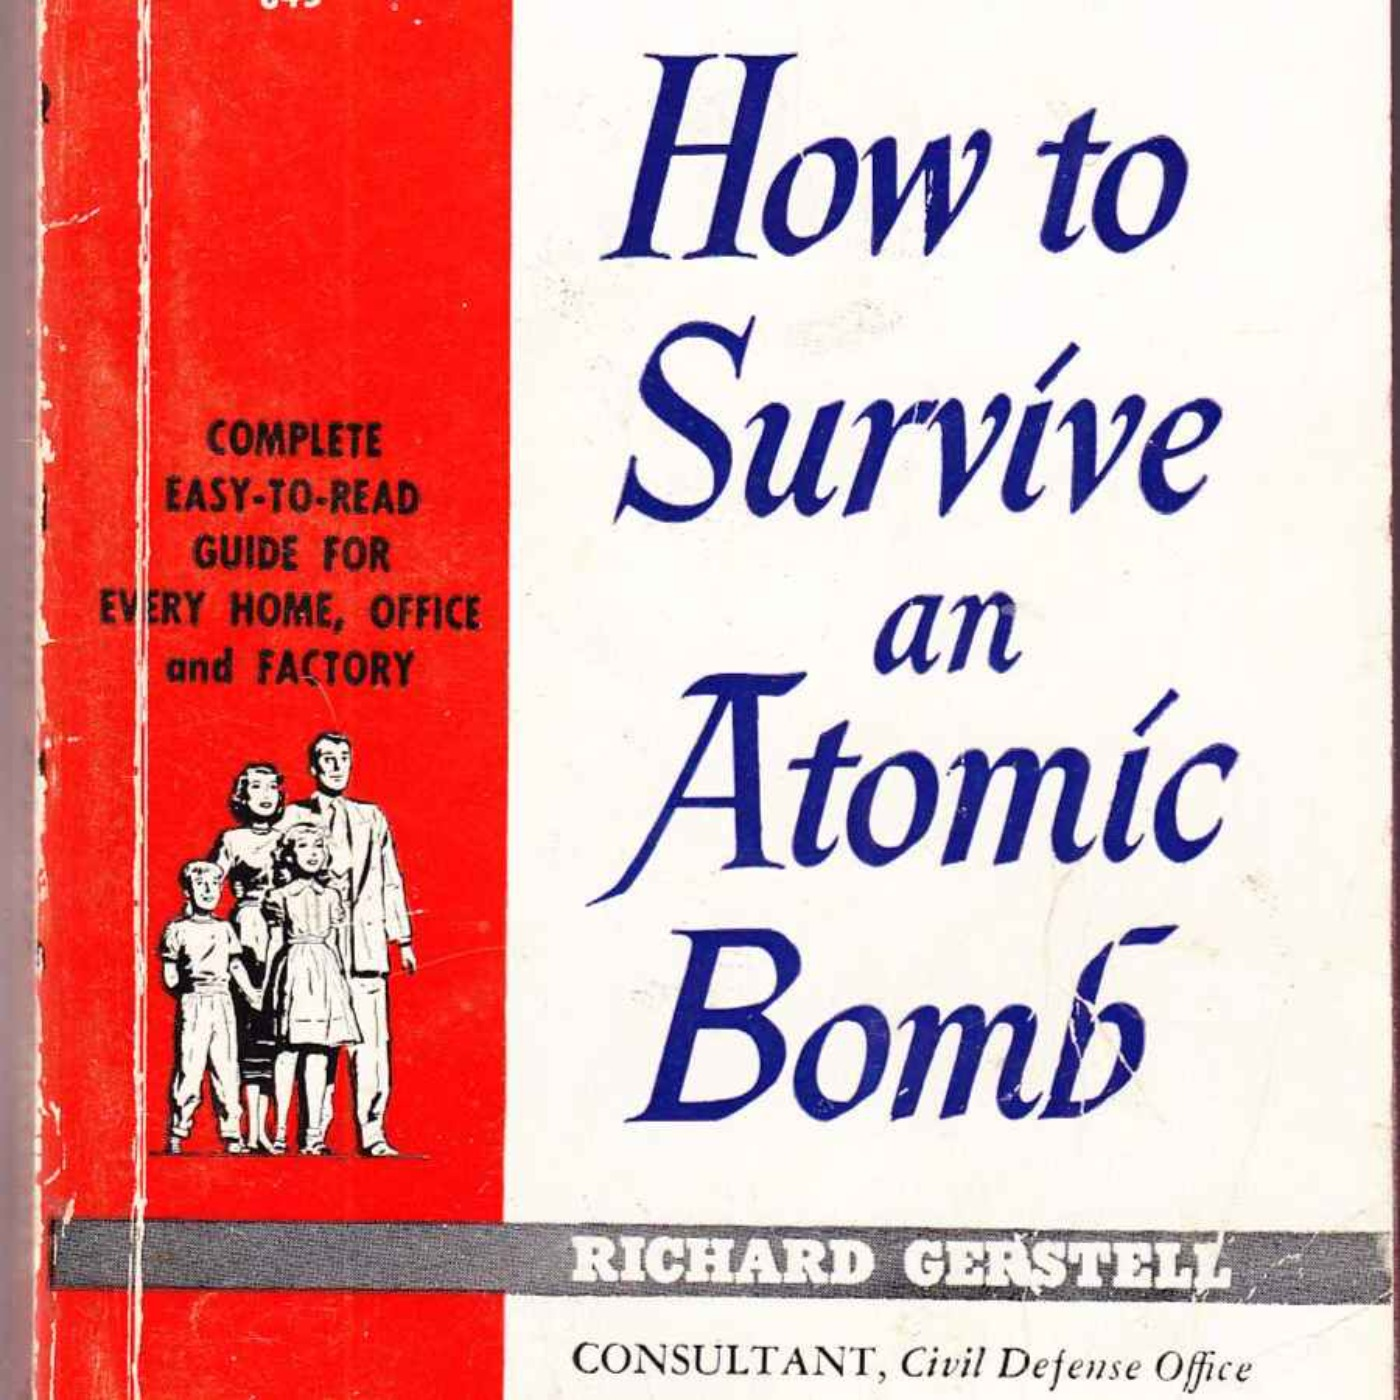 How To Survive An Atomic Bomb